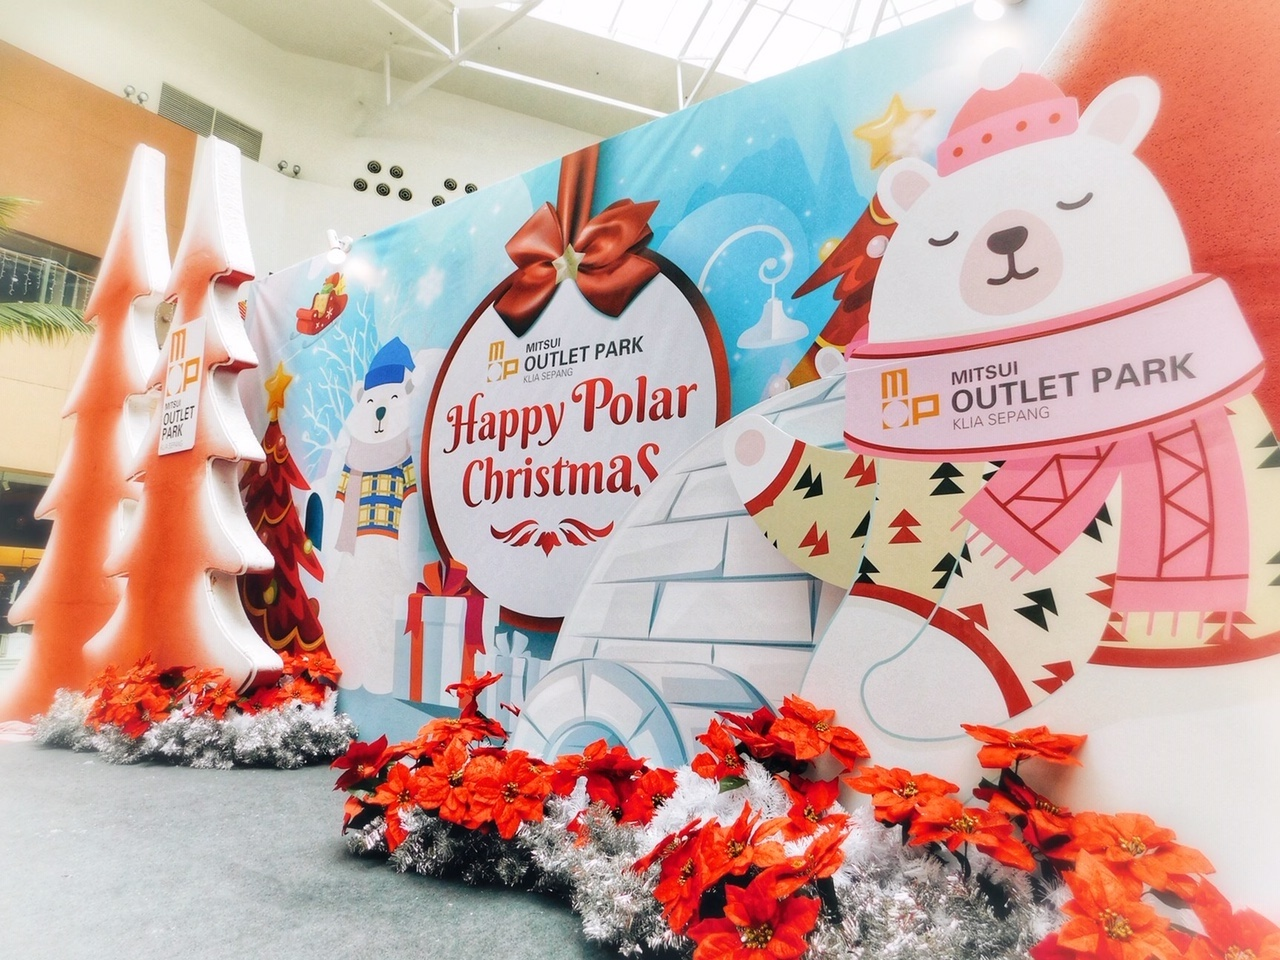 [EVENT] MITSUI OUTLET PARK SEPANG KLIA TO REWARD TWO LUCKY SHOPPERS  WITH A CAR EACH